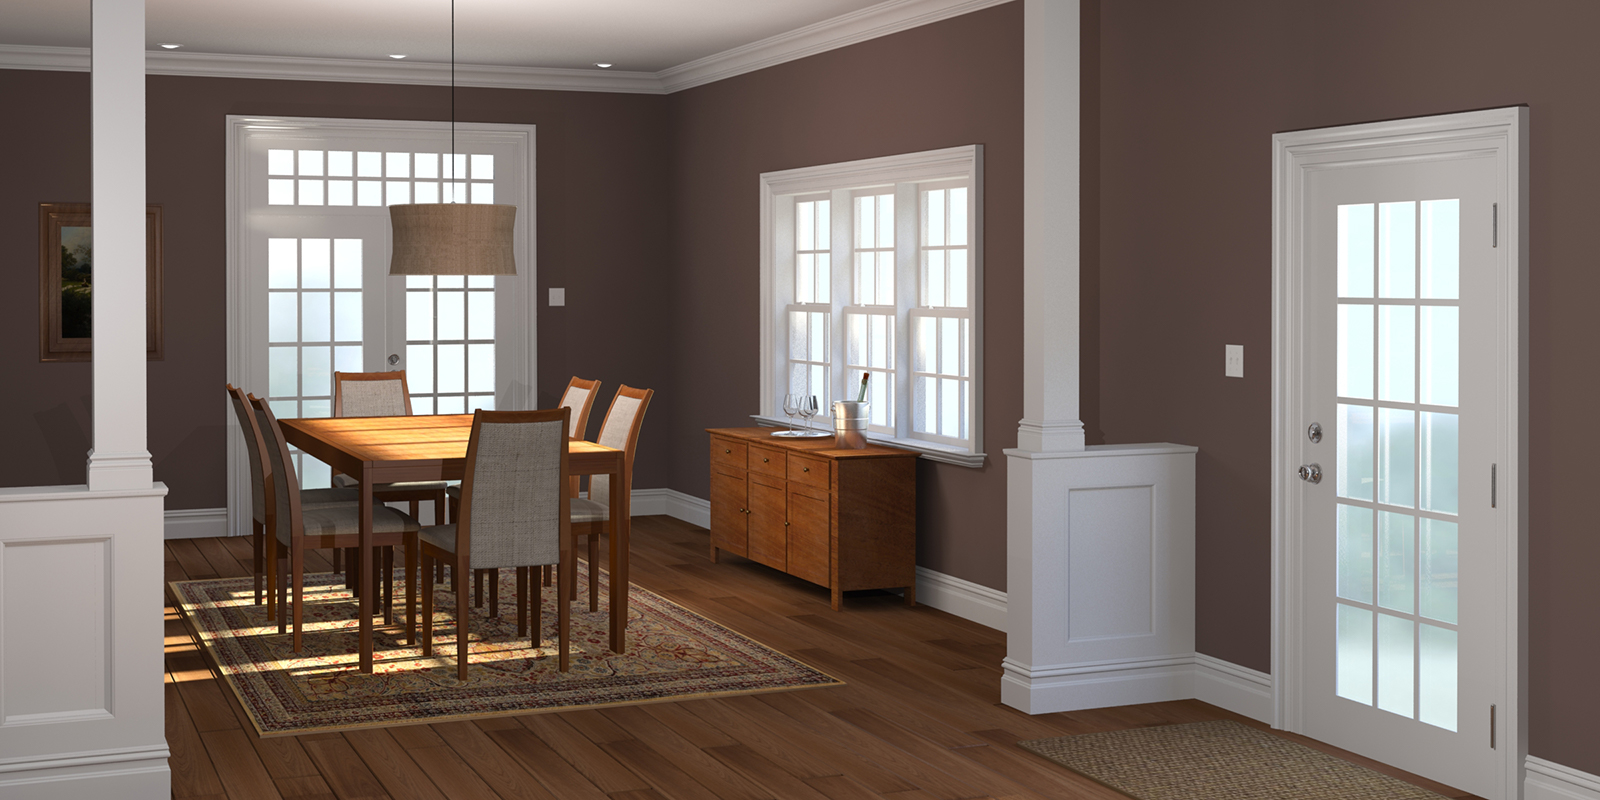 Mouldings in a dining room